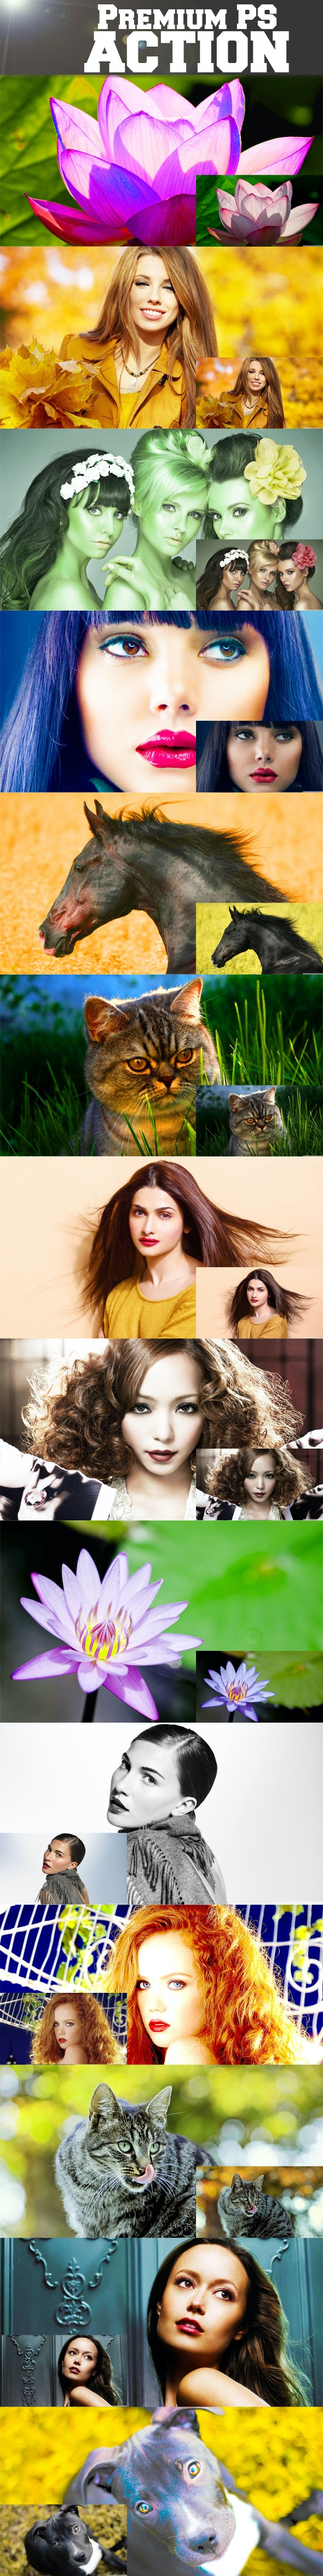 14 Premium PS Actions - Photo Effects Actions